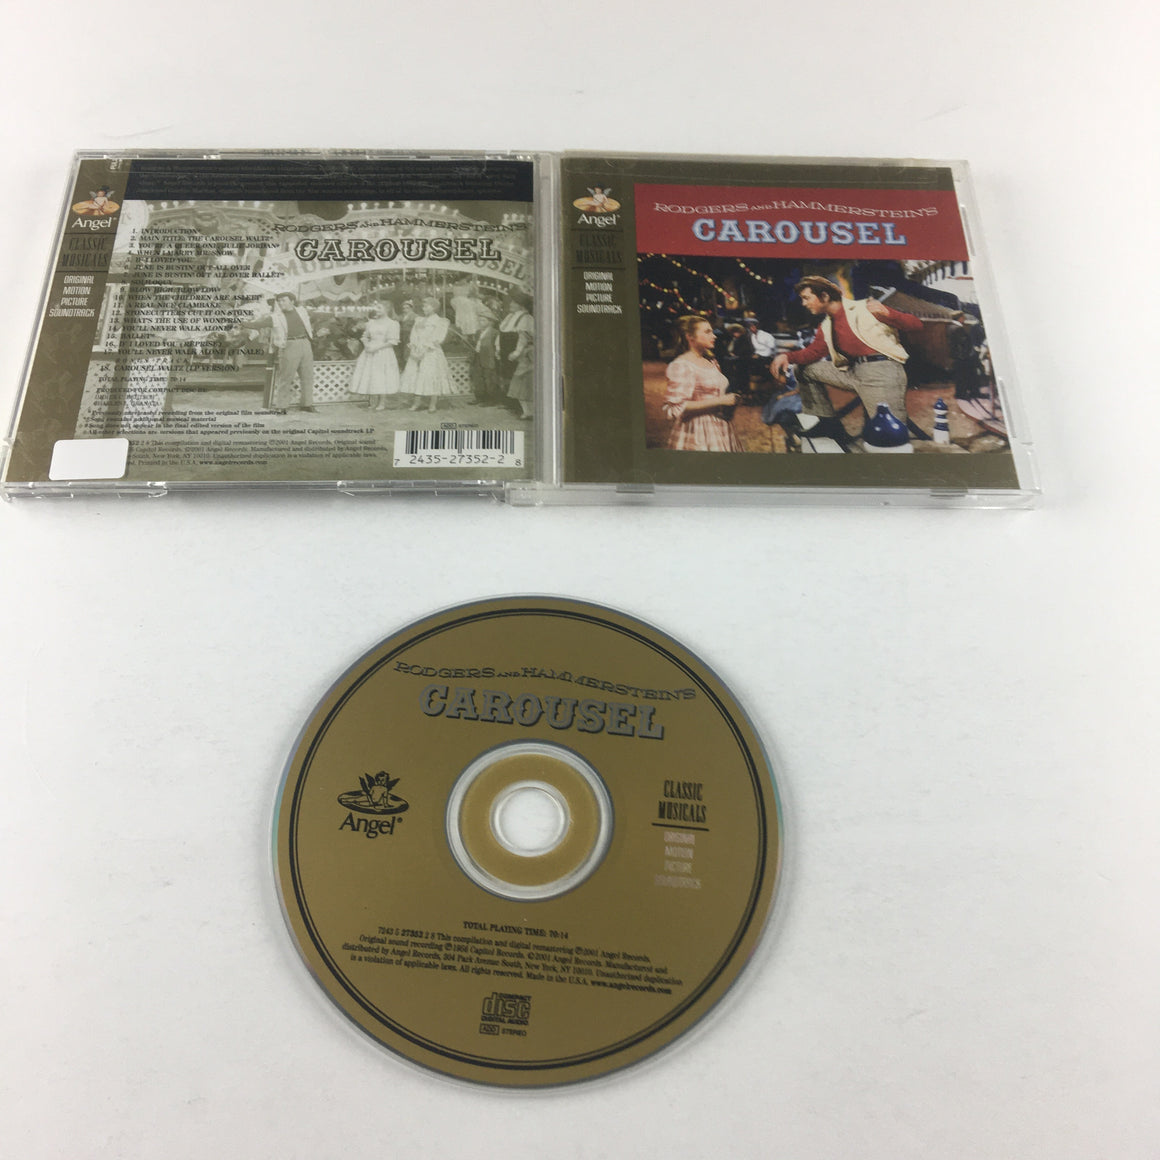 Rodgers & Hammerstein Carousel Used CD VG+ 7243 5 27352 2 8